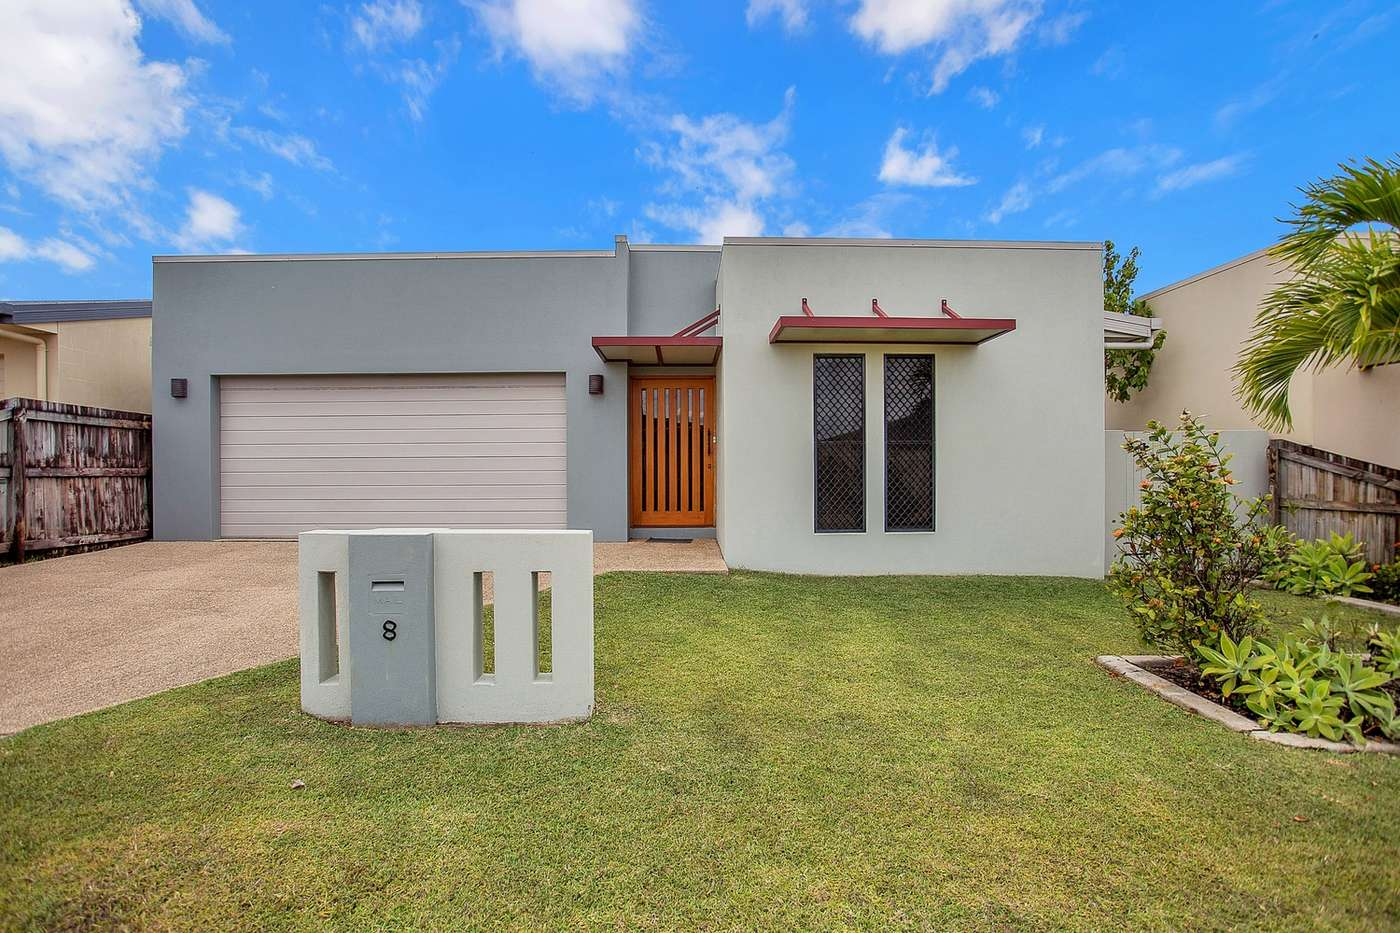 Main view of Homely house listing, 8 Rosemoor Court, Glenella, QLD 4740